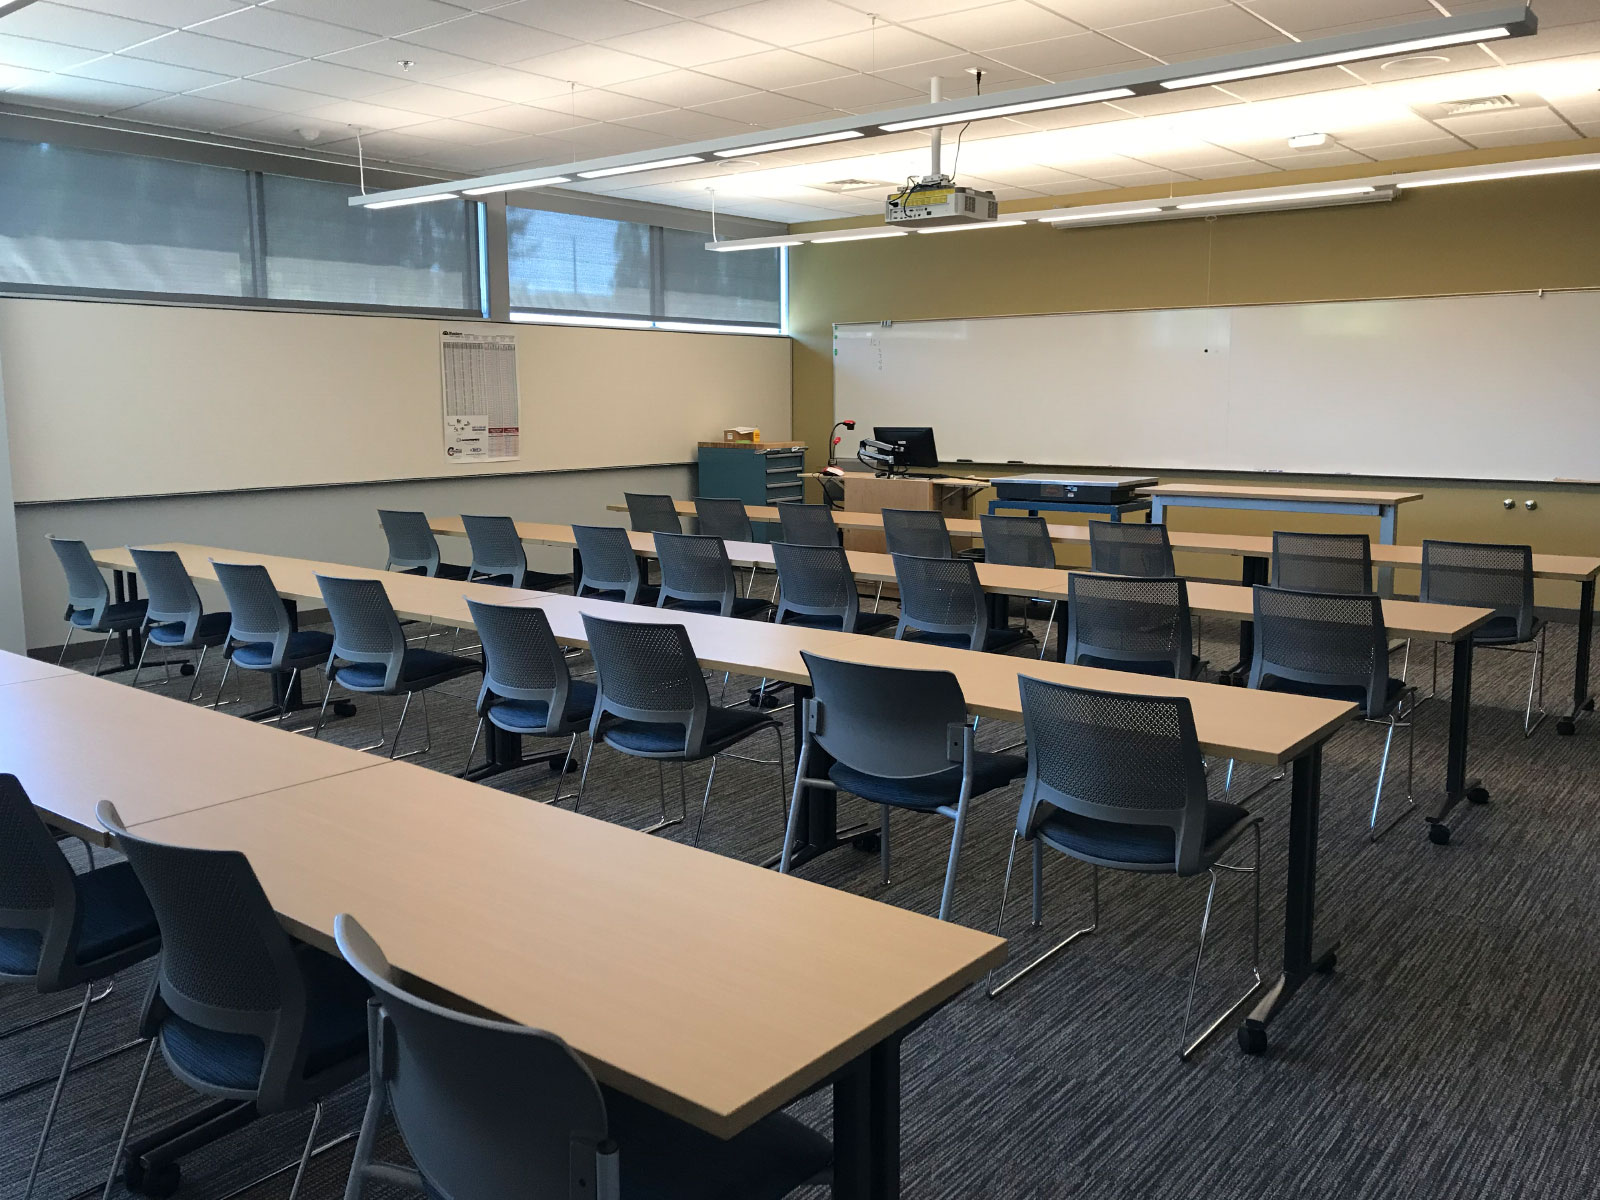 Several rows of tables and chairs in a classroom with a room-wide whiteboard in the Oregon City campus' Industrial Technology Center